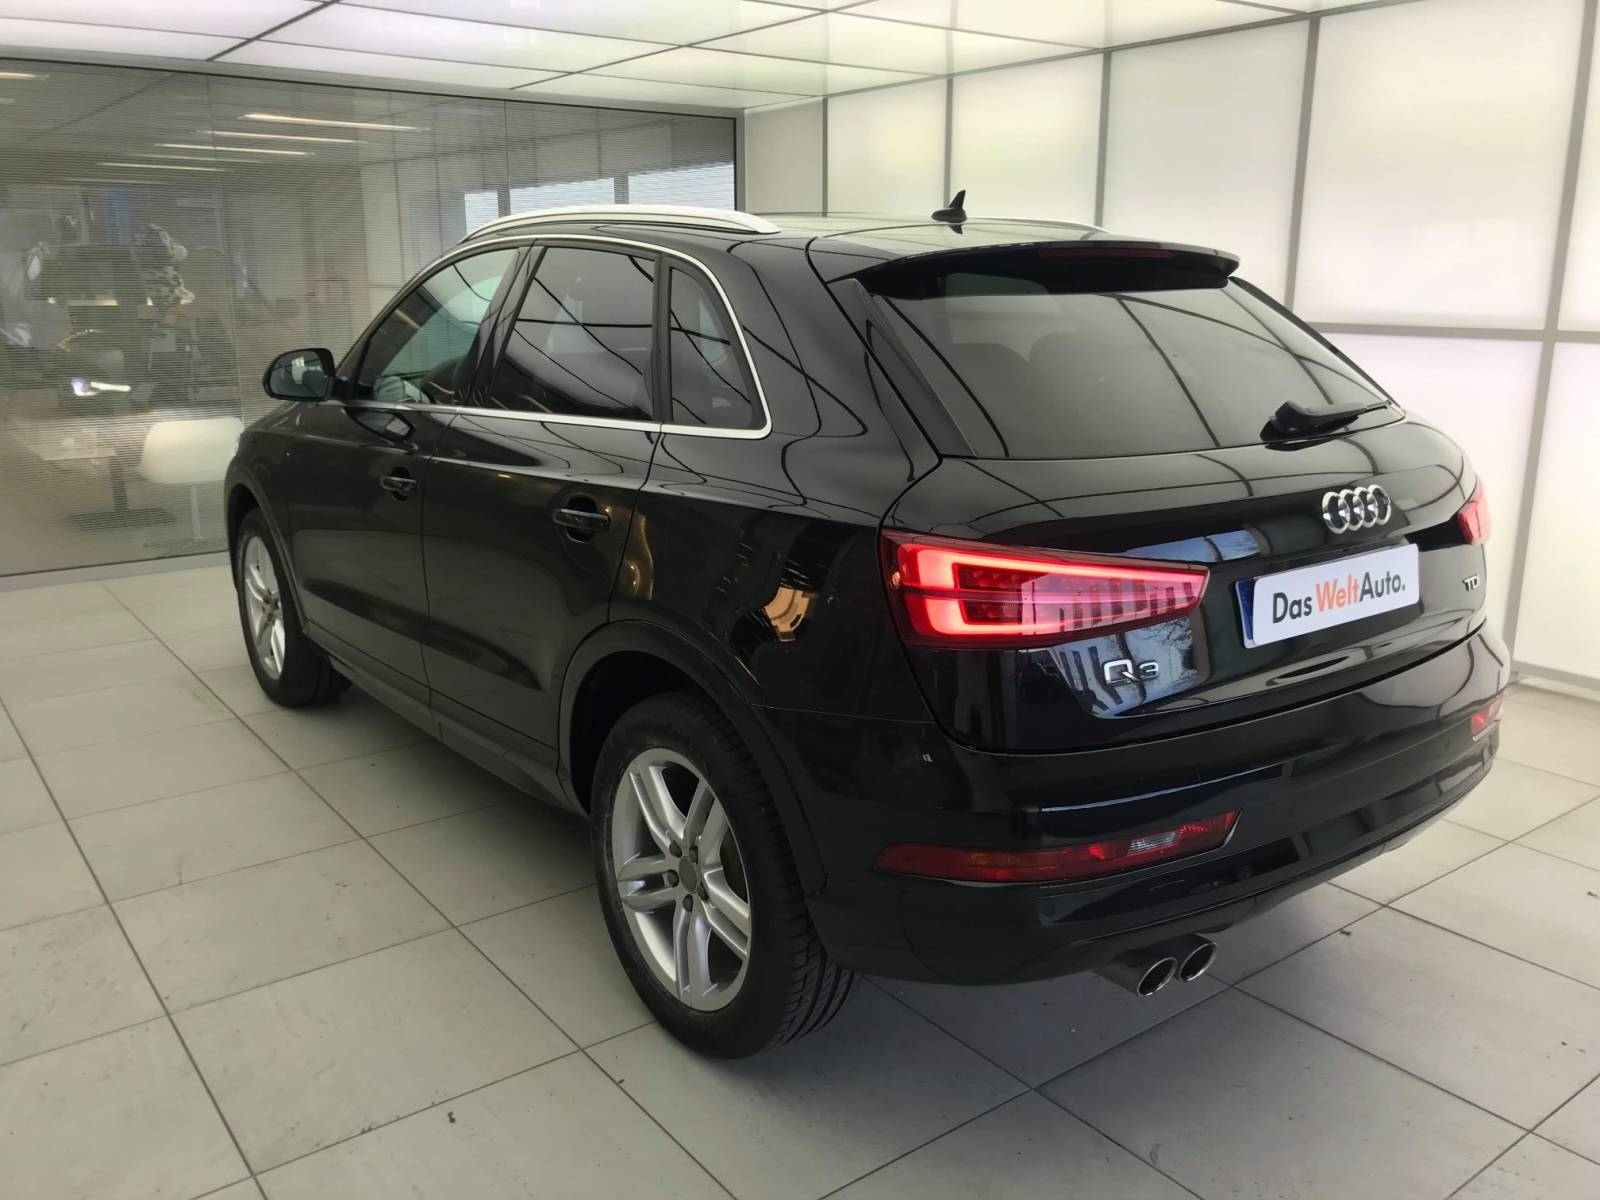 AUDI Q3 2.0 TDI 150 ch S tronic 7 - véhicule d'occasion - Site Internet Faurie - Volkswagen - Faurie Axess Tulle - 19000 - Tulle - 7